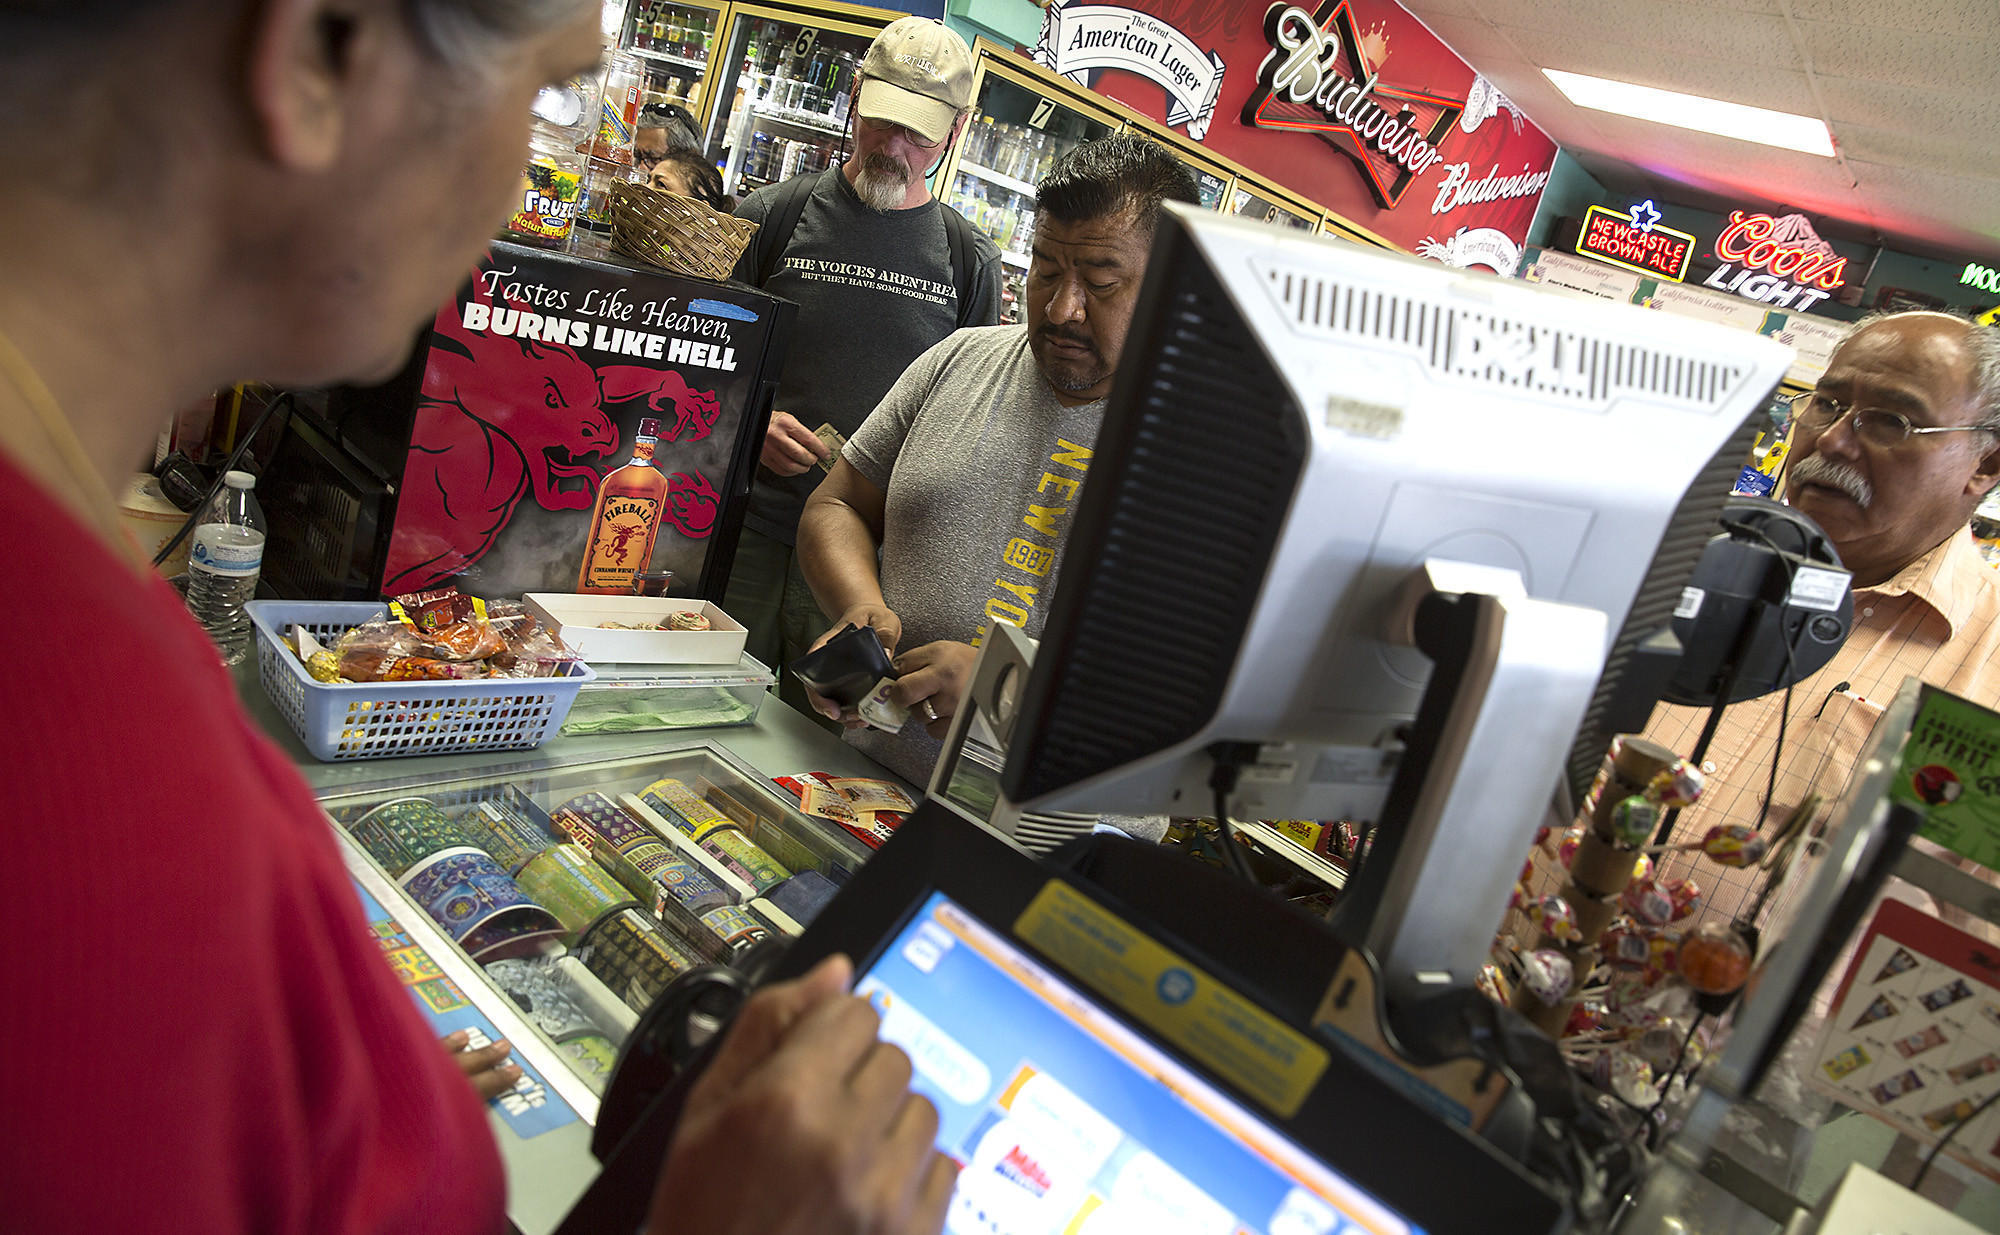 So what's the better bet: Powerball, Mega Millions or Super Lotto Plus? We ask the experts